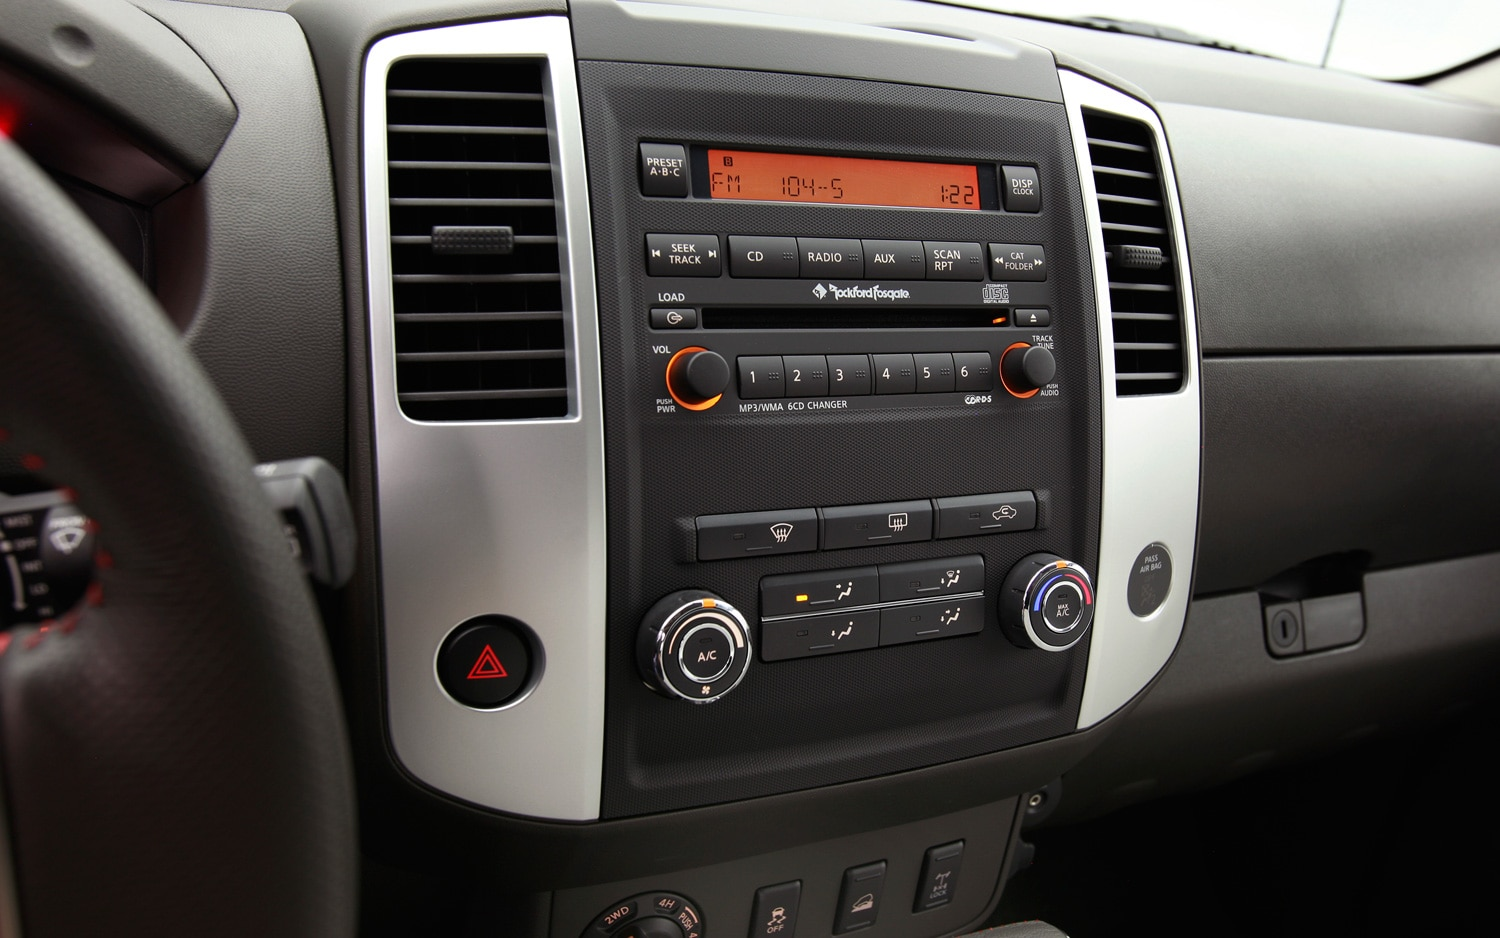 2012 Nissan Xterra Audio Controls